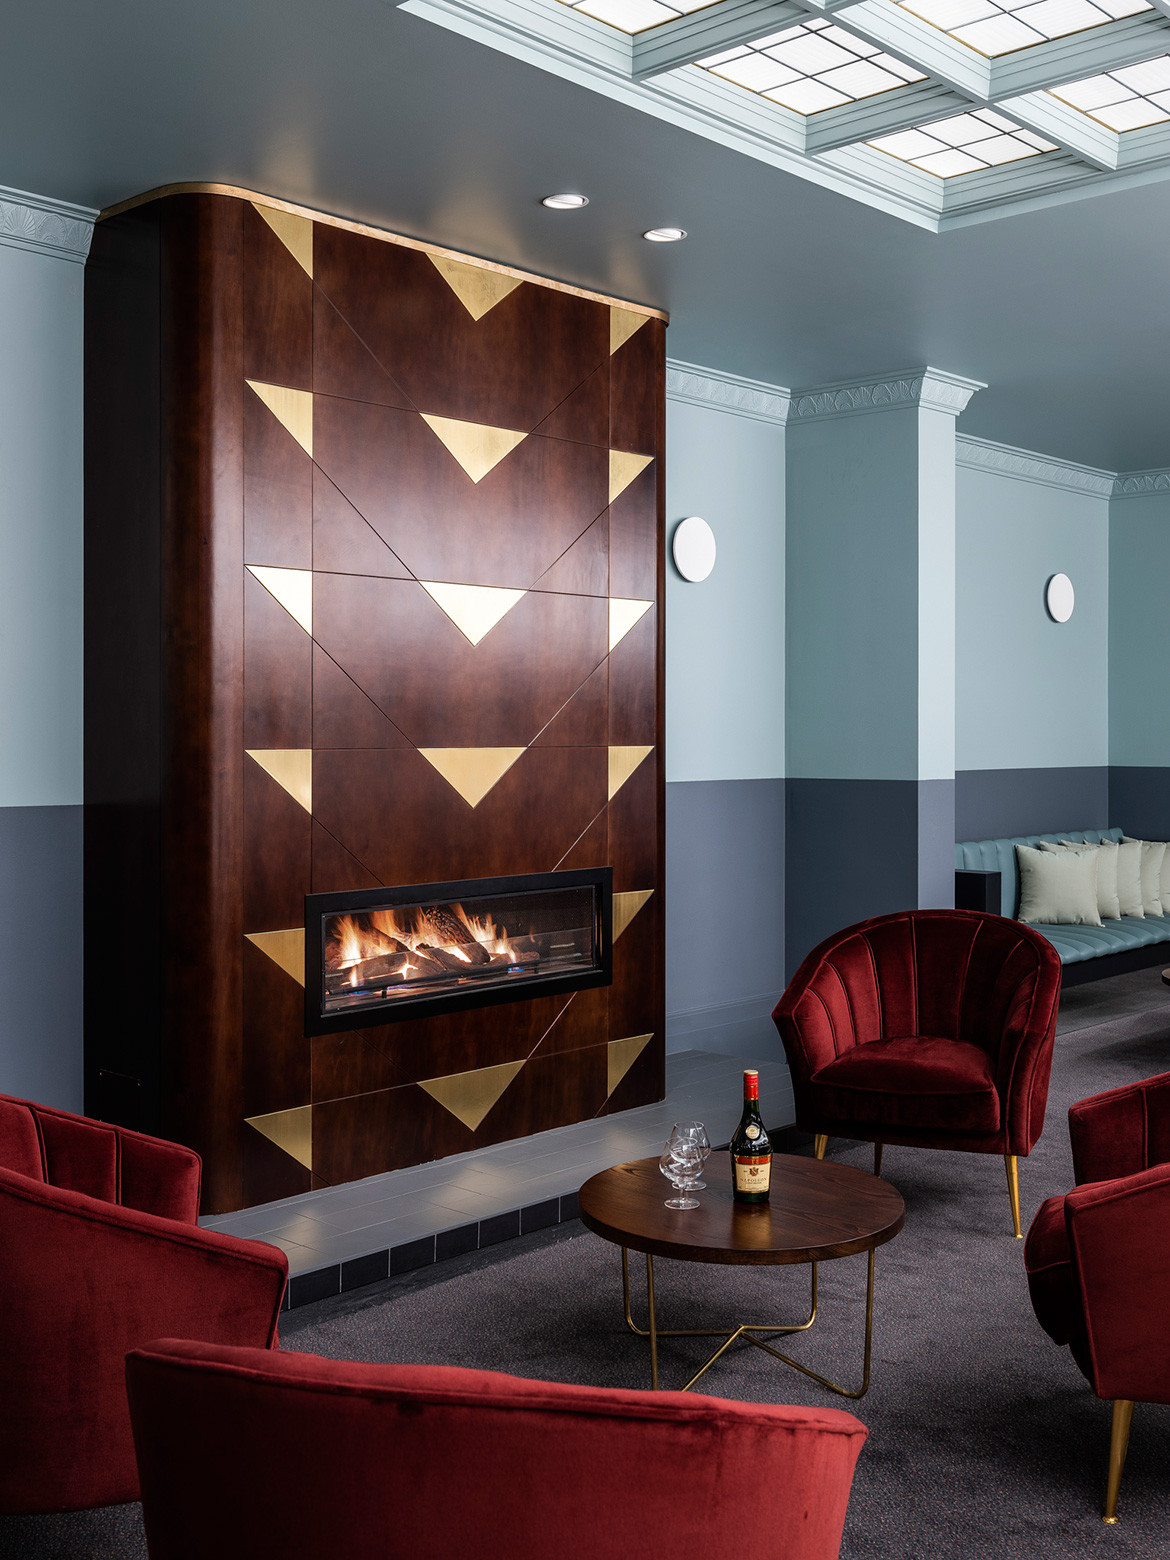 Art deco design meets regional charm at The Tattersalls Hotel, a recent restoration project by hospitality design connoisseurs Luchetti Krelle.